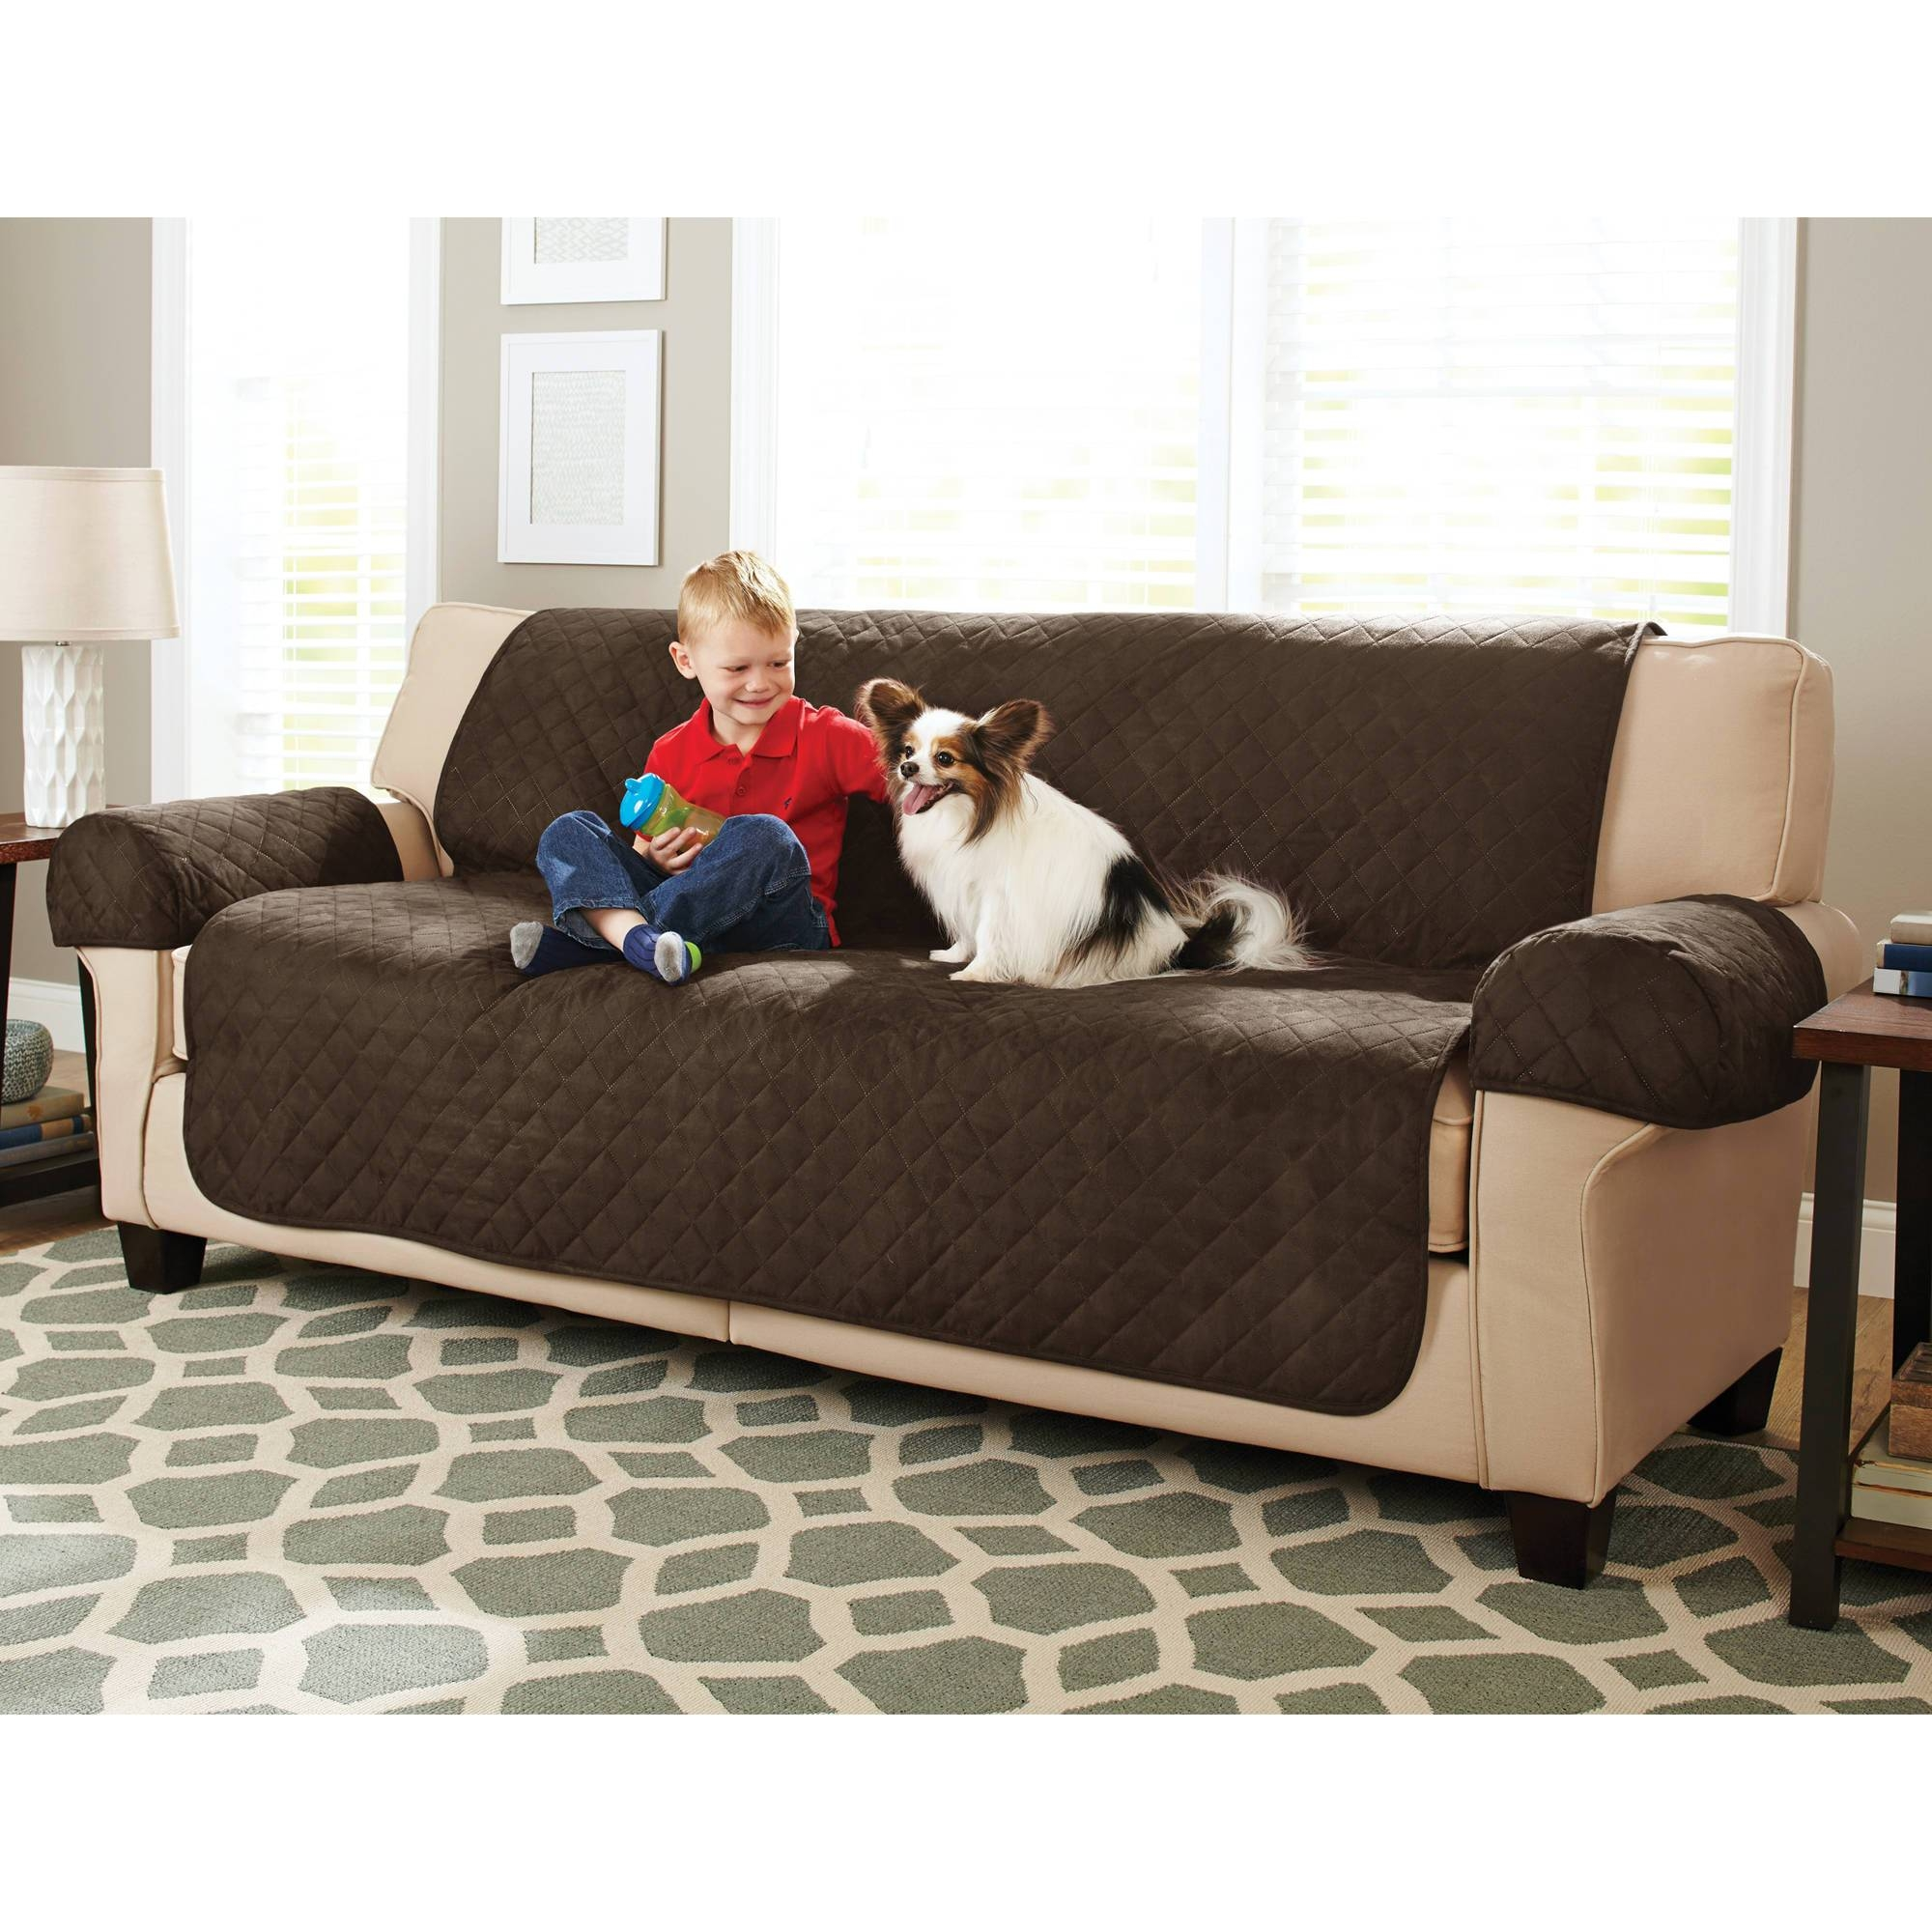 Better Homes And Gardens Waterproof Non-Slip Faux Suede Pet for Pet Proof Sofa Covers (Image 2 of 15)